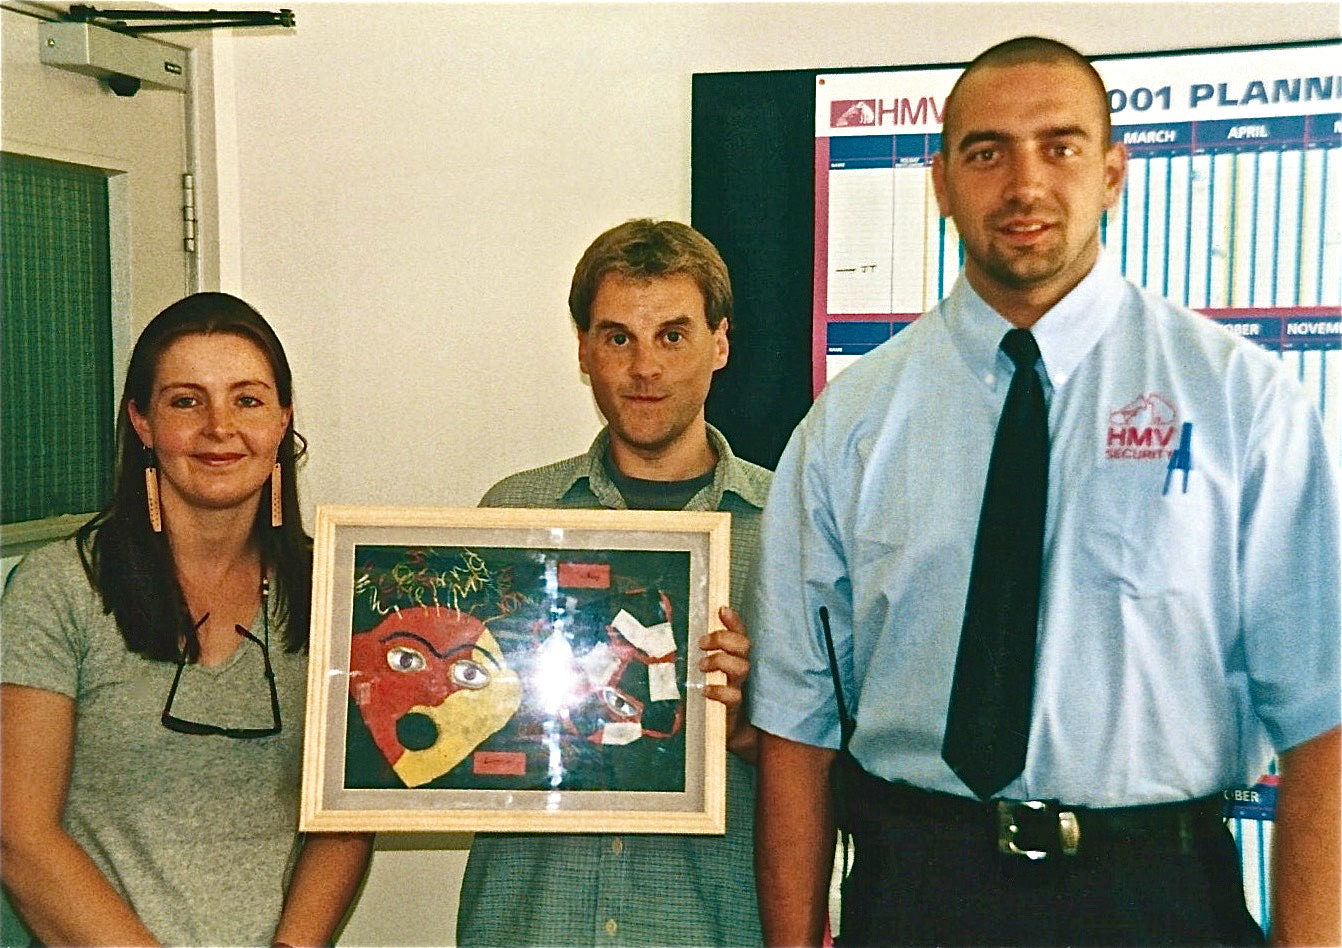 'oxfordshire youth offending service', gifting a reparative artwork